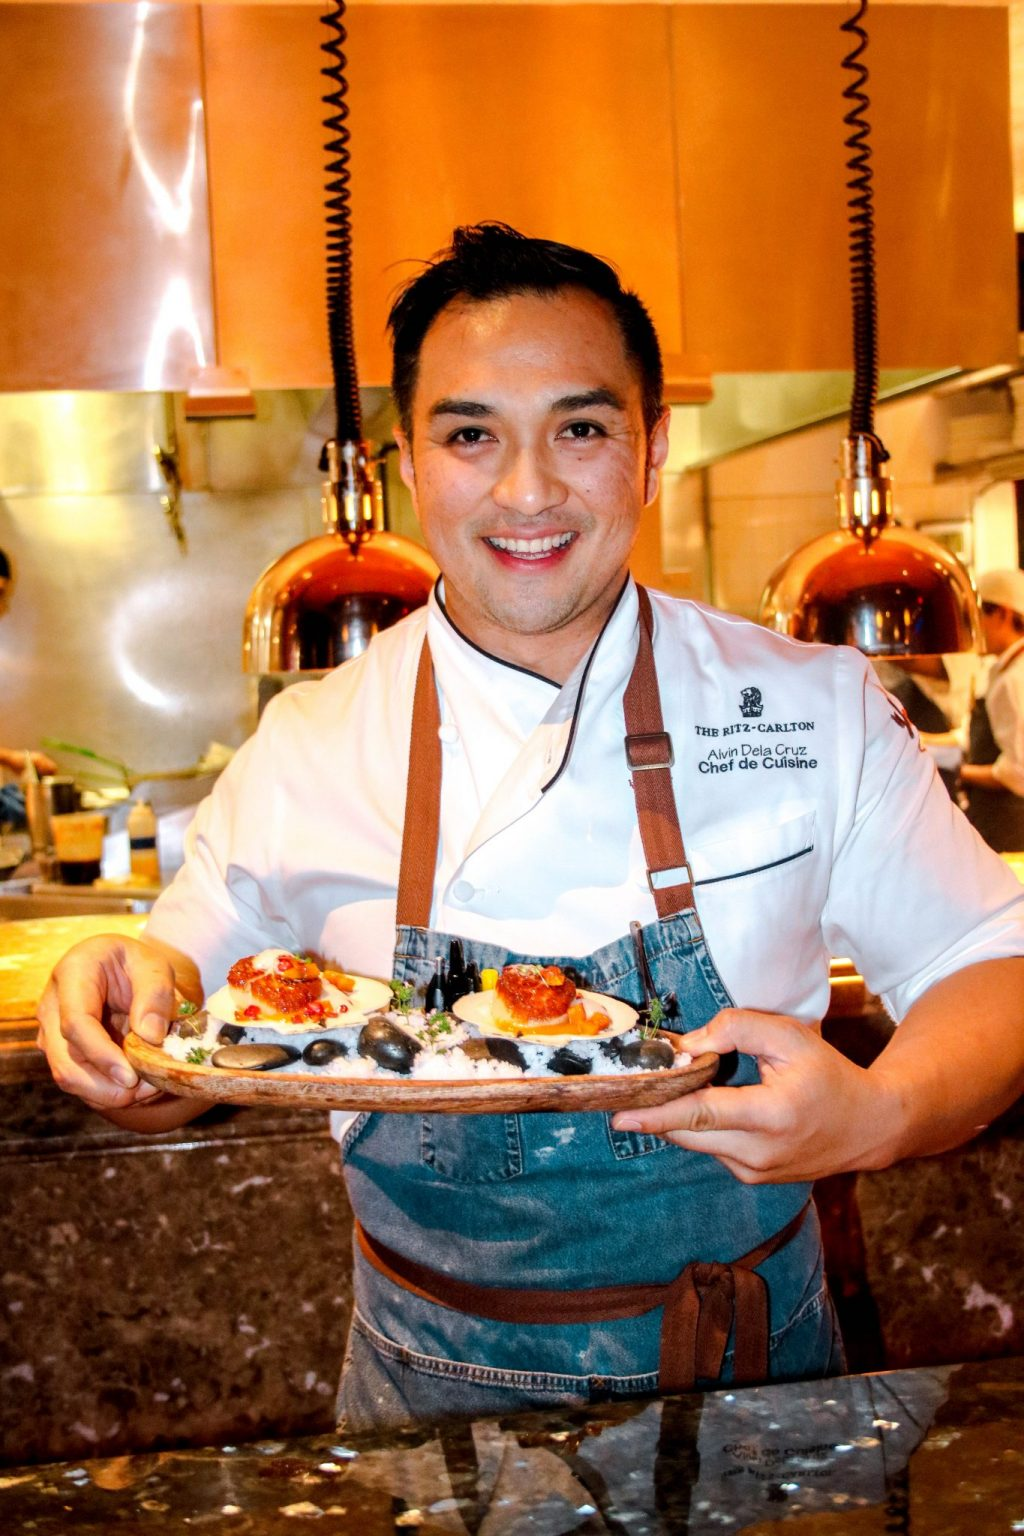 Chef's Table at West End Bistro in Washington, D.C. with Chef Alvin Dela Cruz